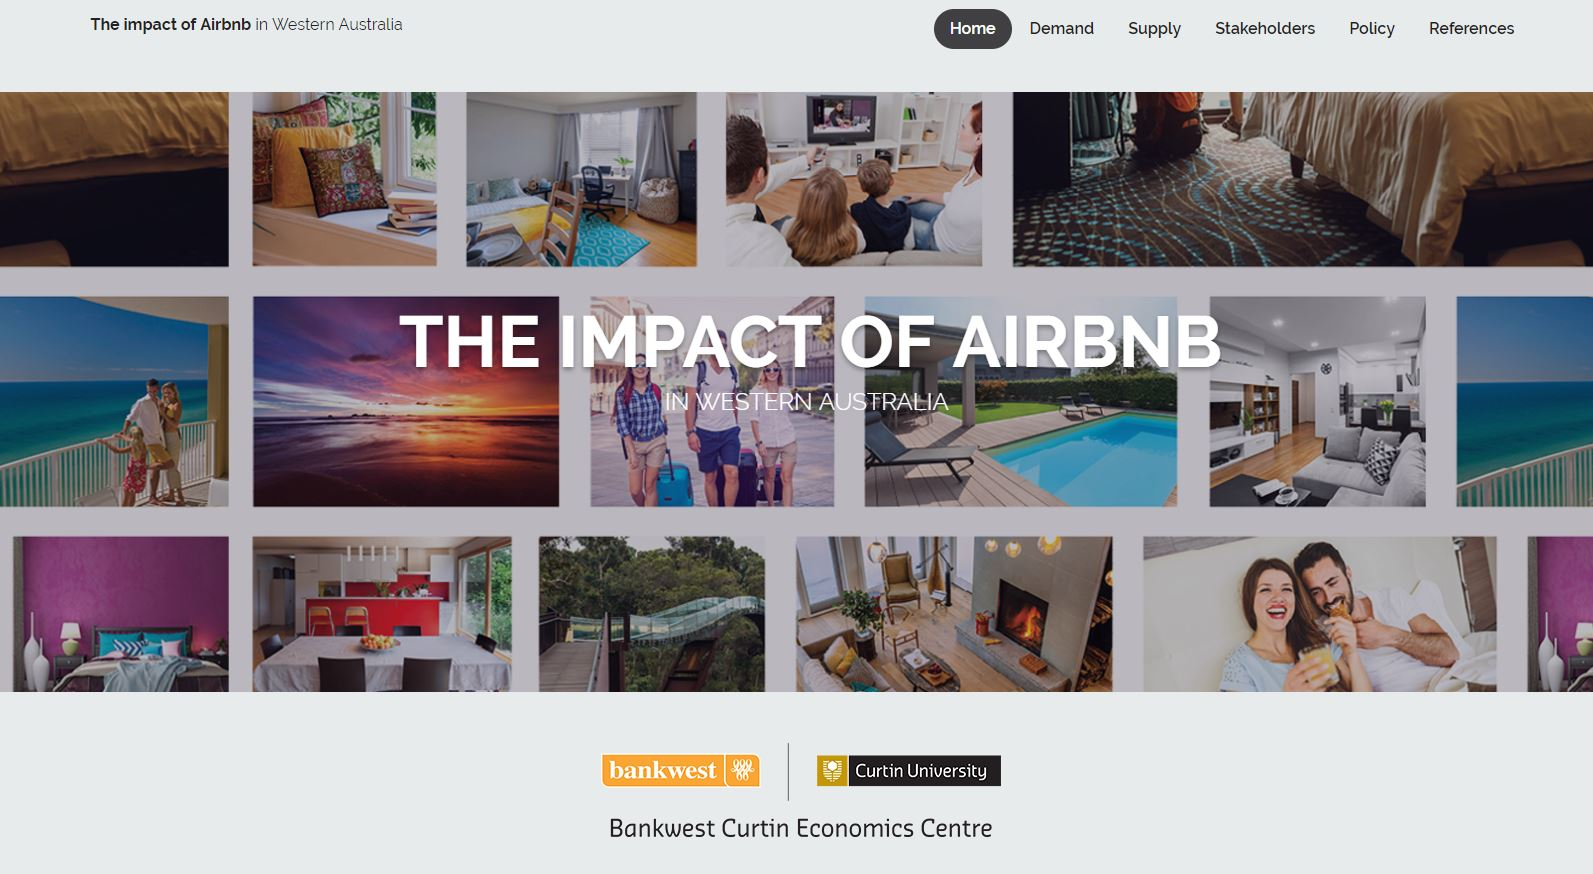 airbnb online report homepage screenshot